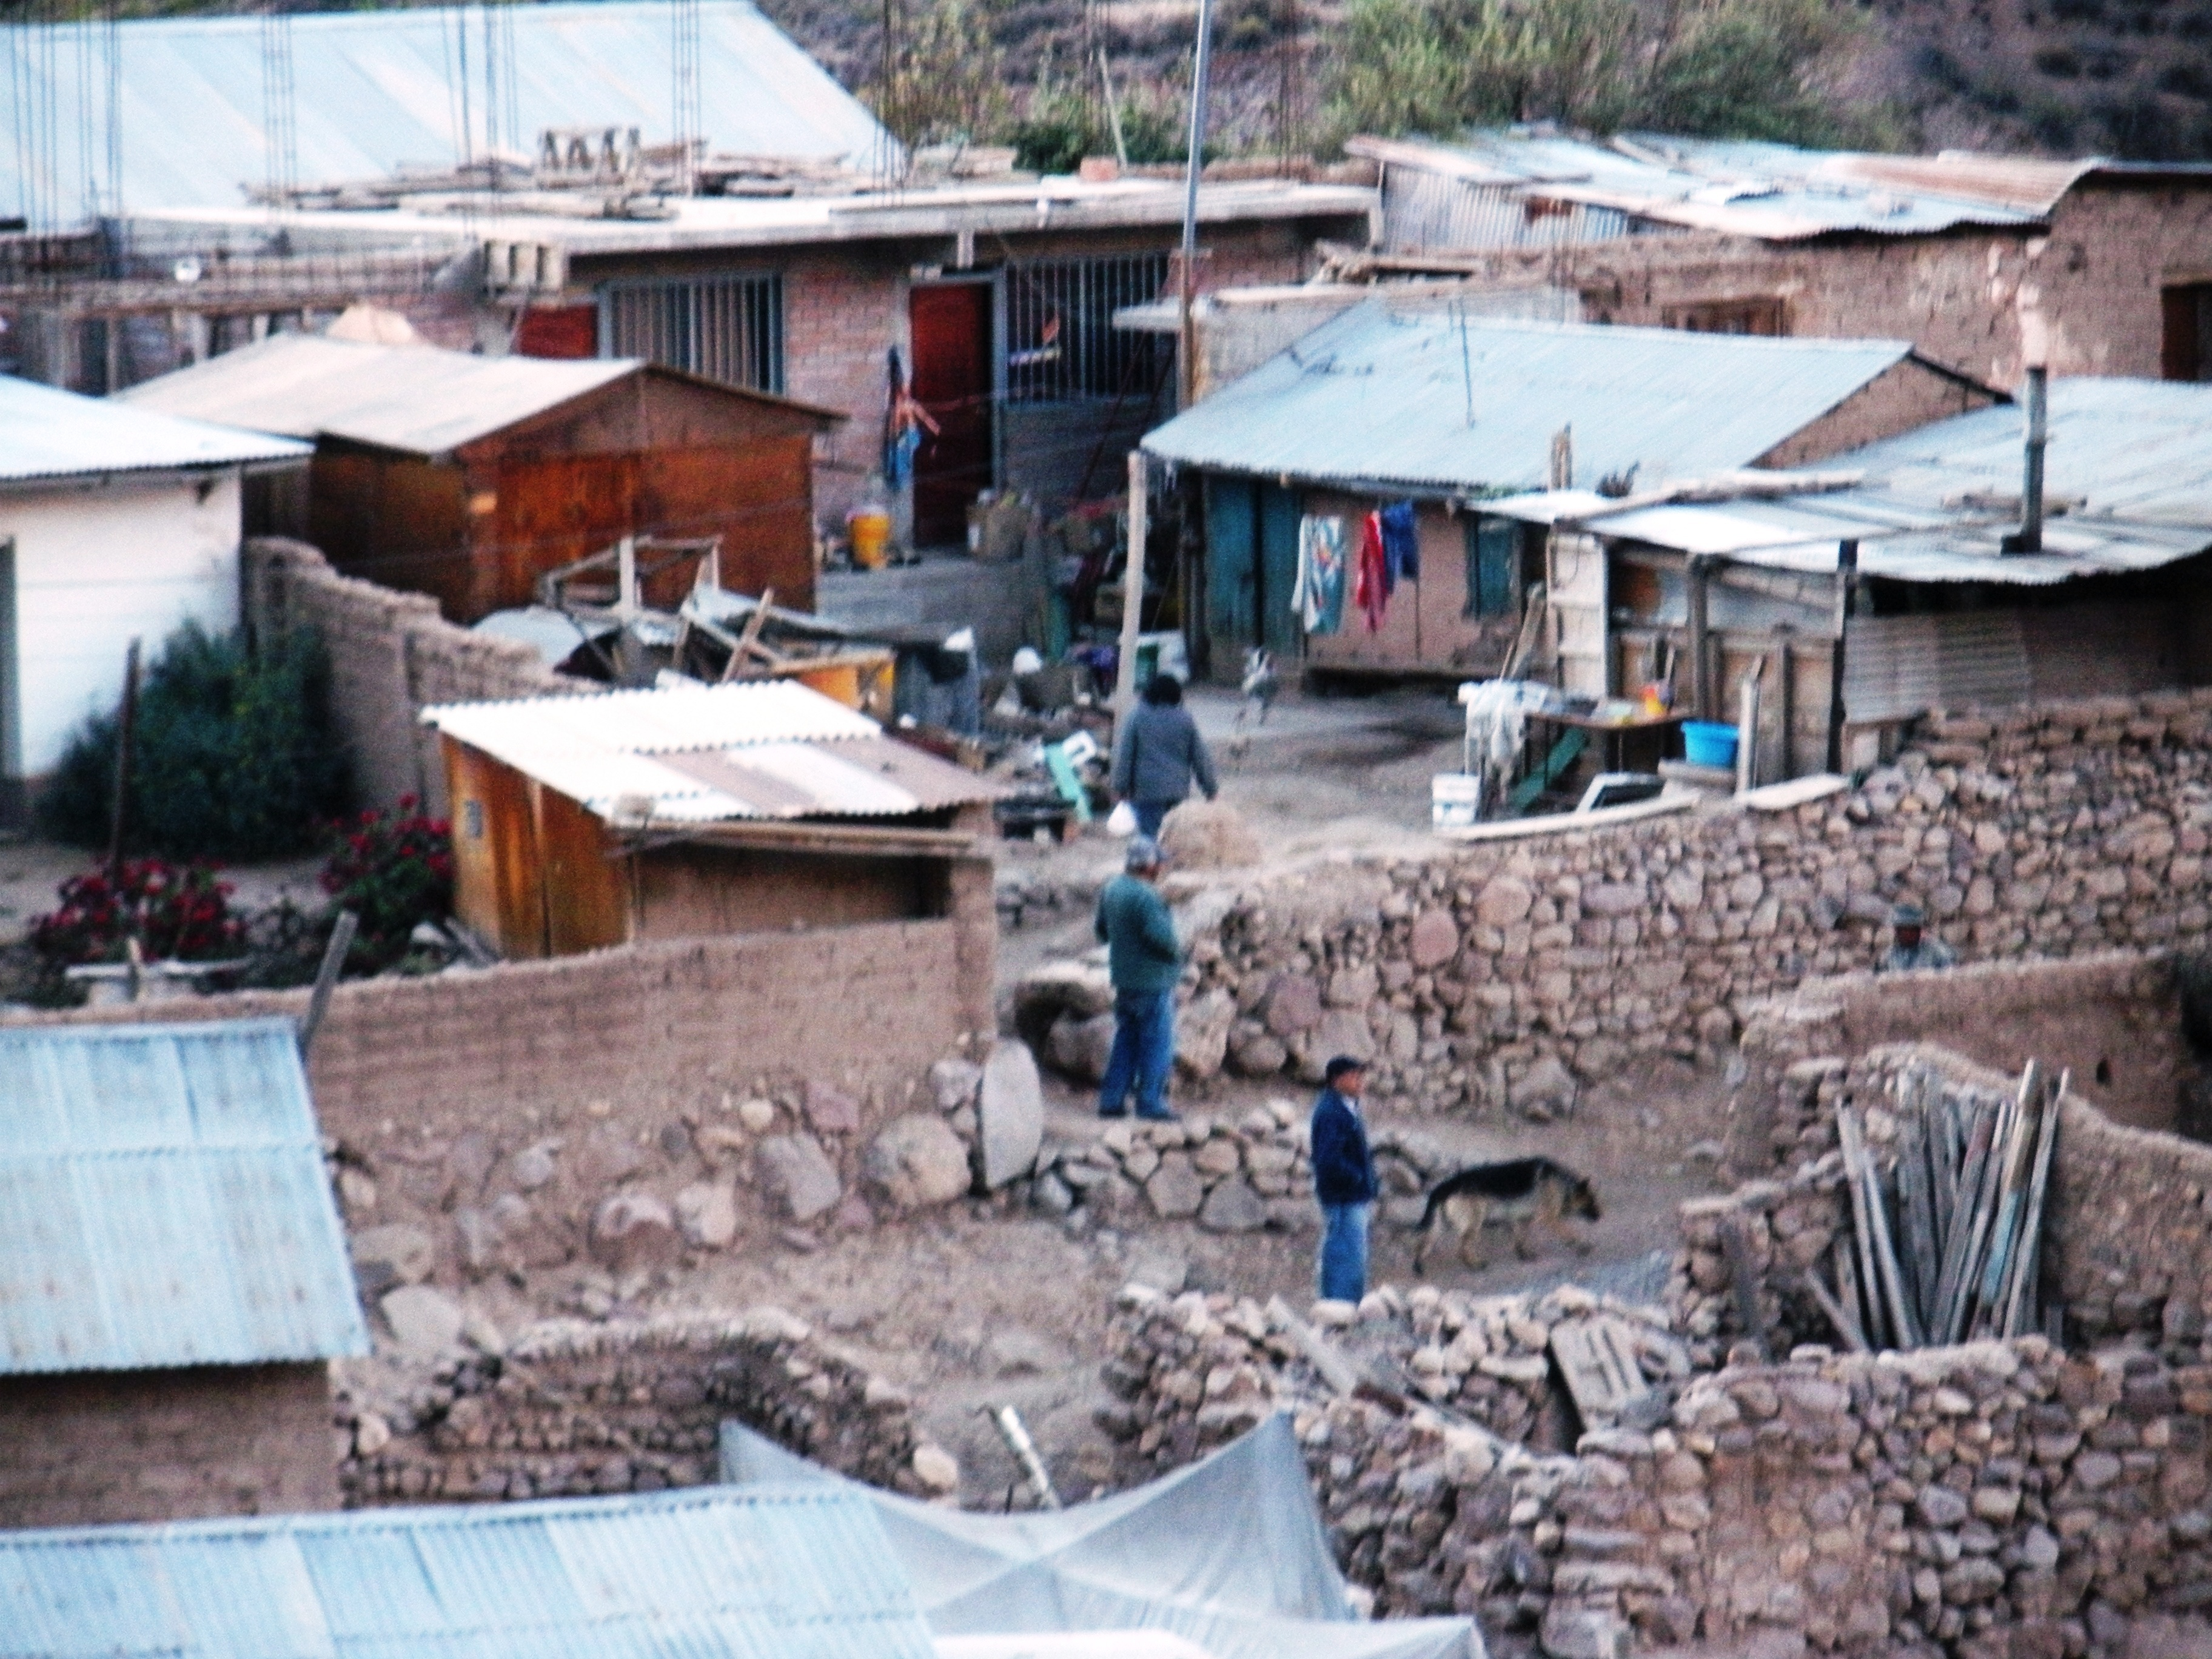 Houses in an indigenous community high in the Andes